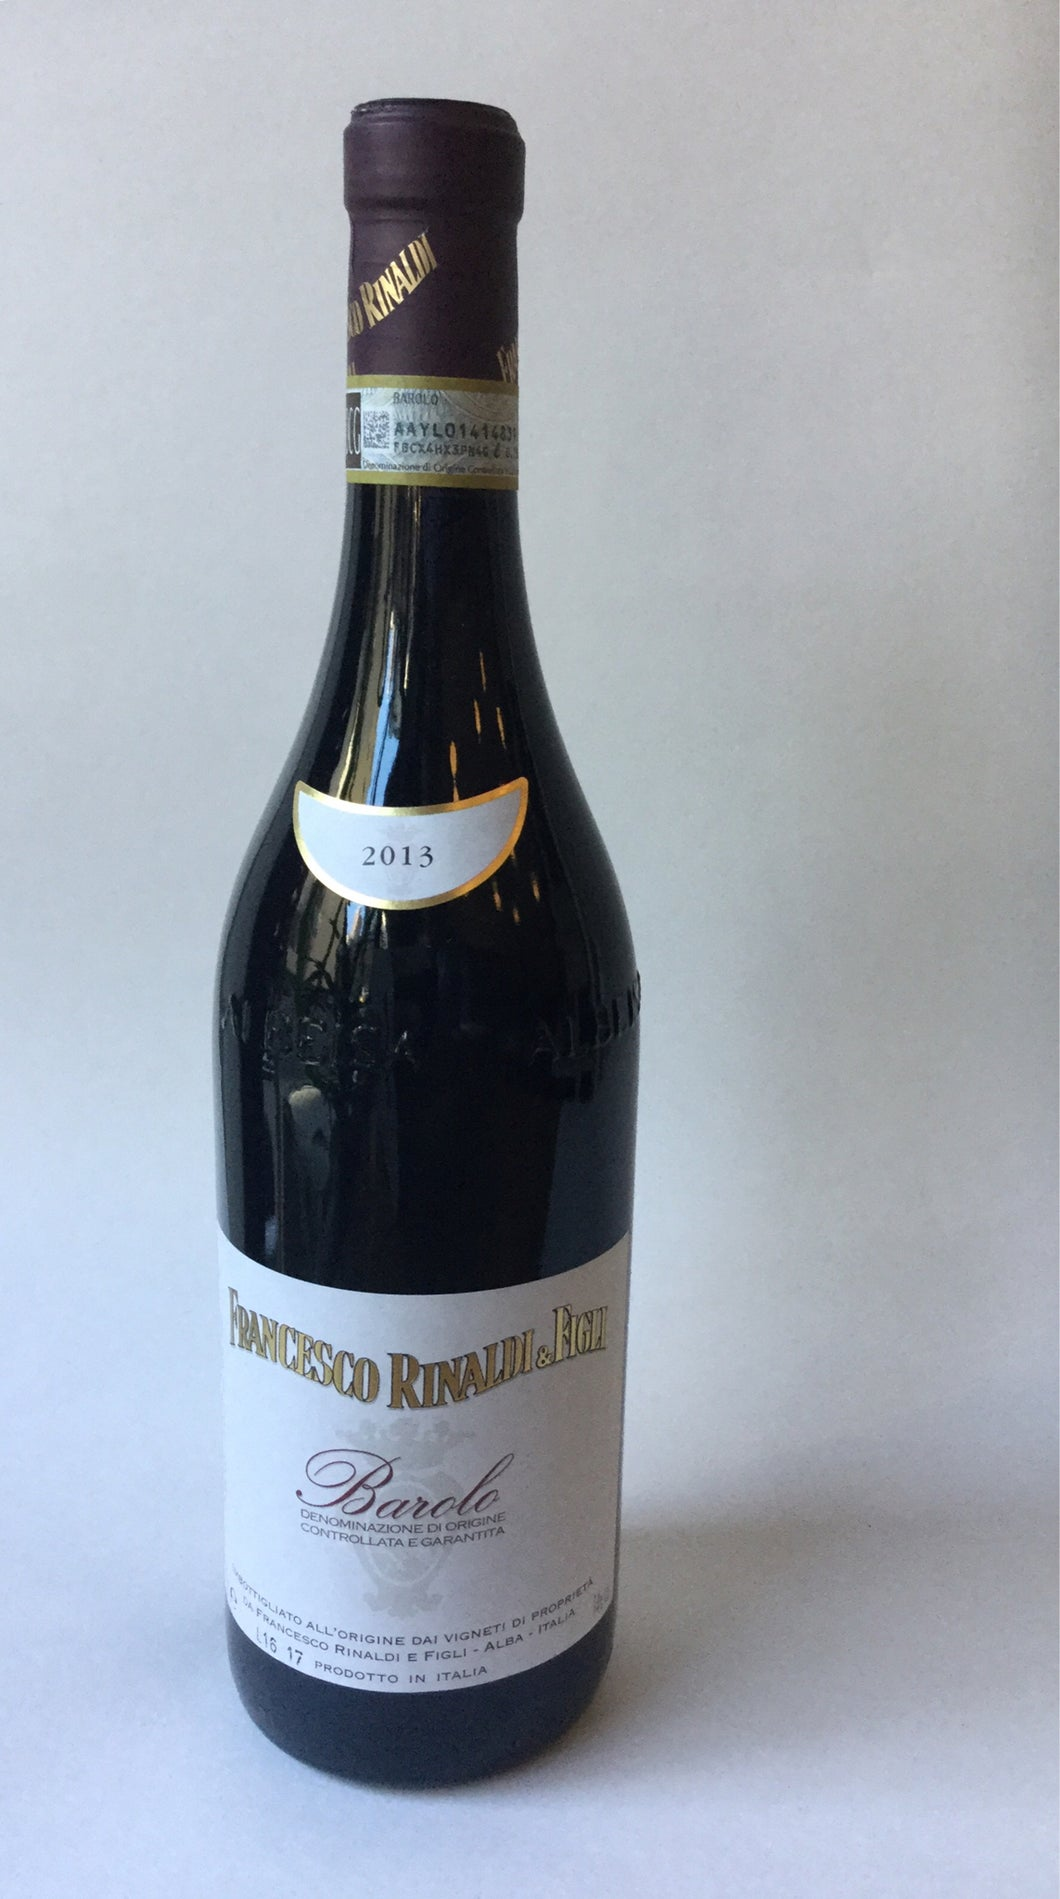 Francesco Rinaldi Barolo 2013, 750ml - Frankly Wines